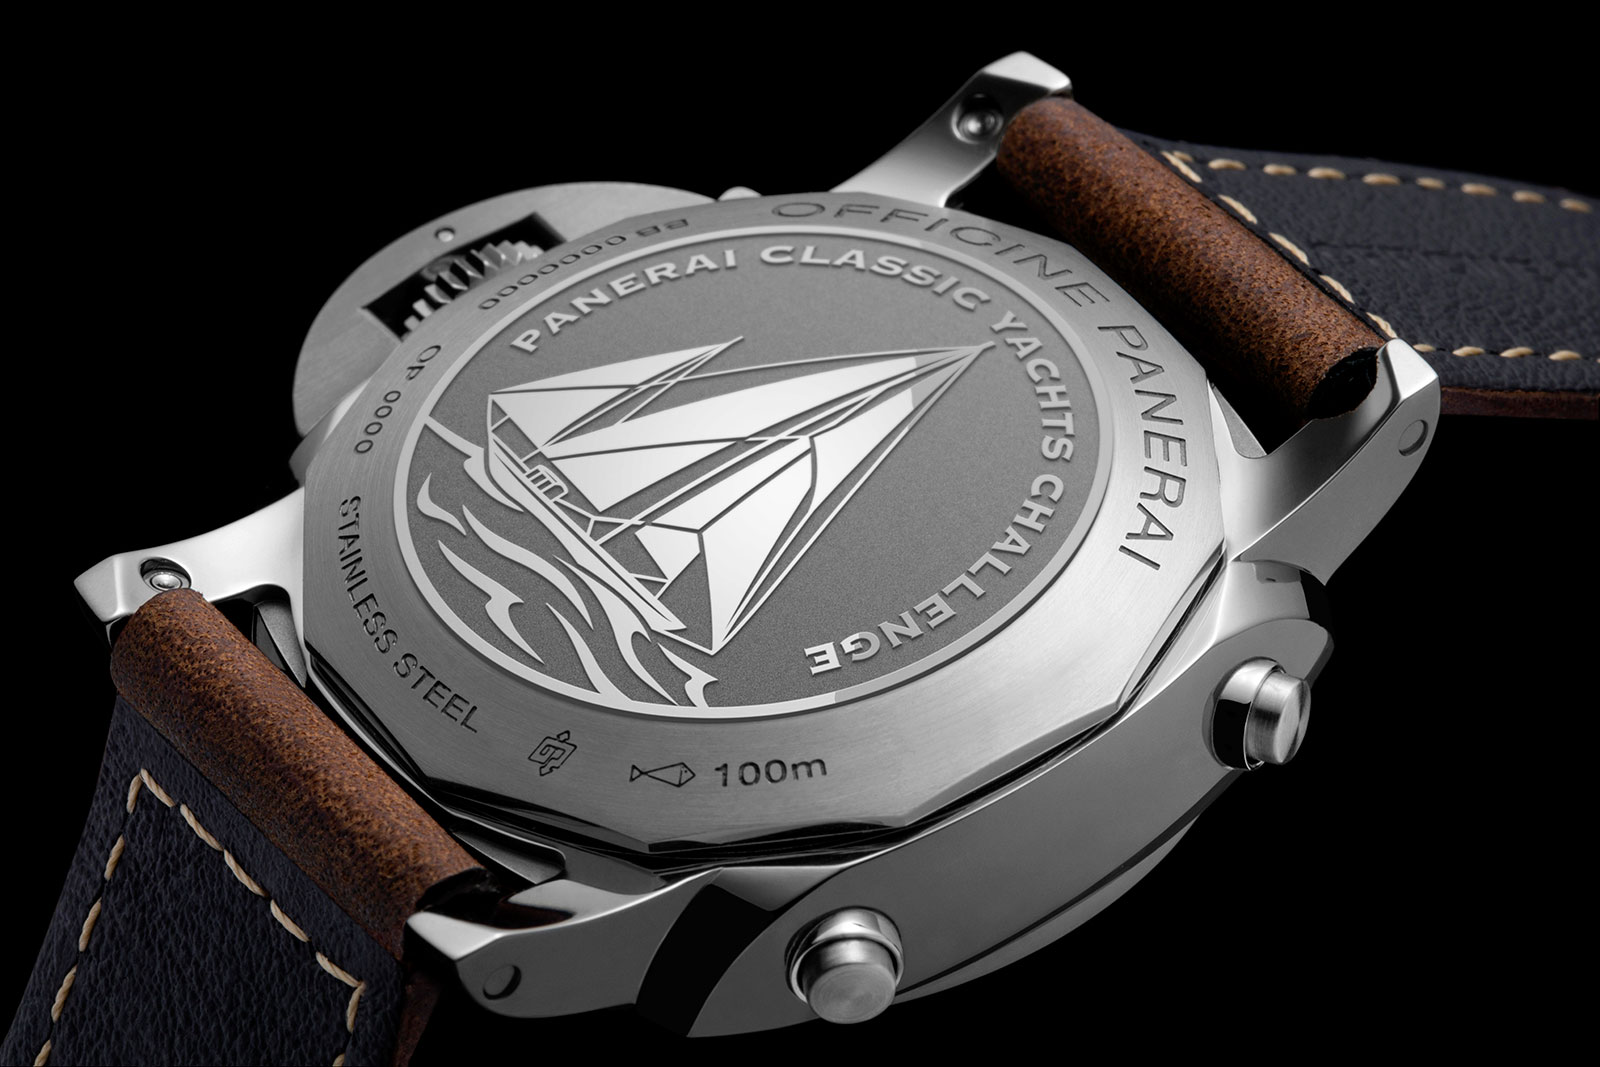 Panerai Luminor 1950 PCYC Chrono Flyback PAM654